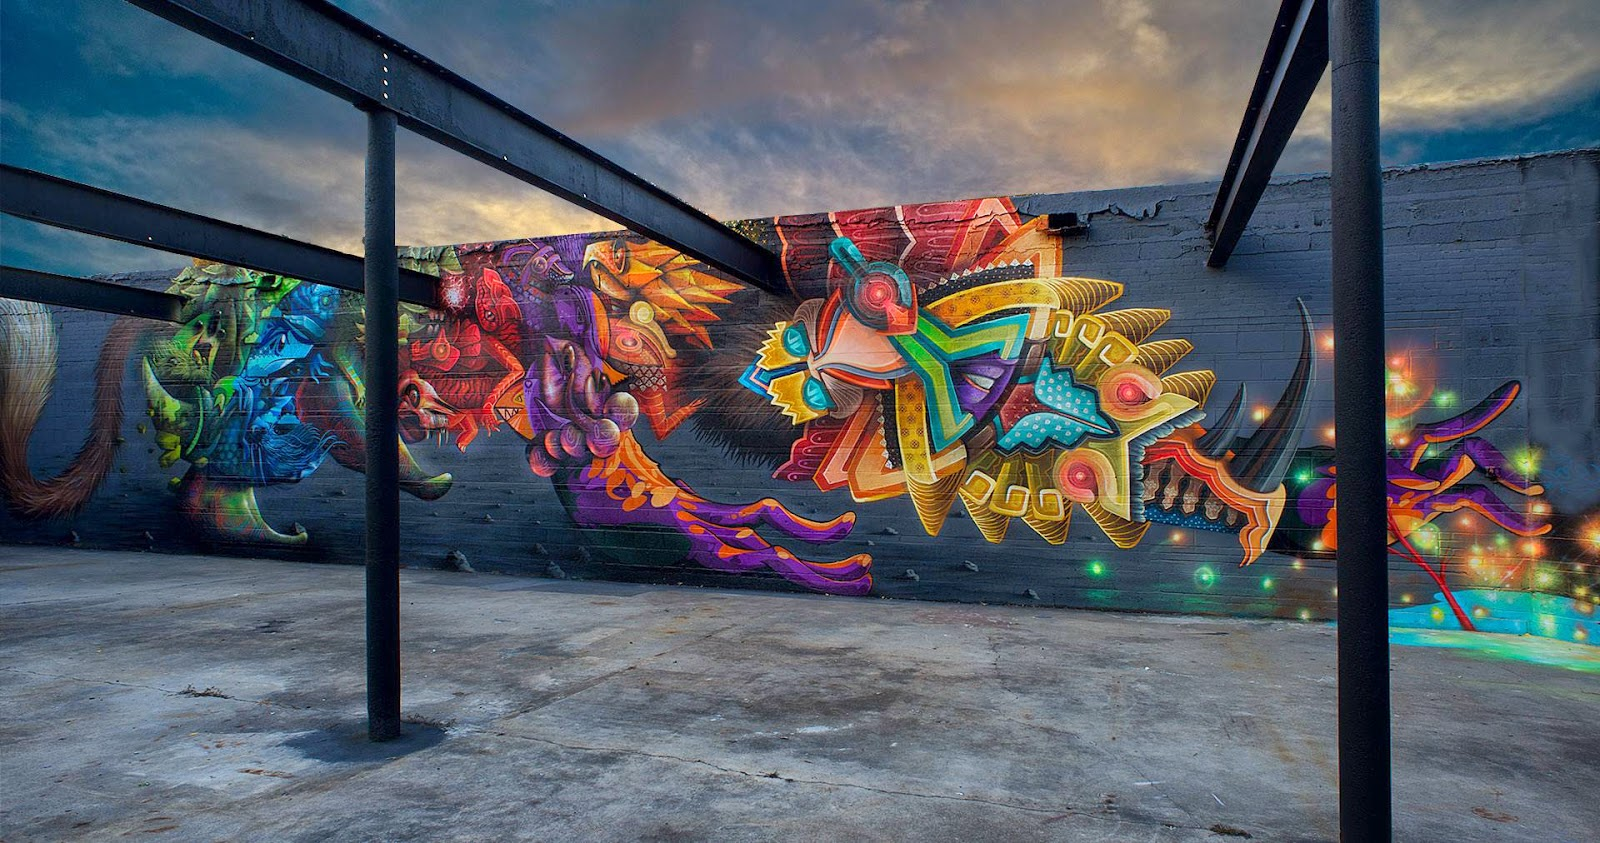 Curiot and Nosego are currently in North America where they were invited to paint a new collaboration on the streets of Baton-Rouge in Louisiana.